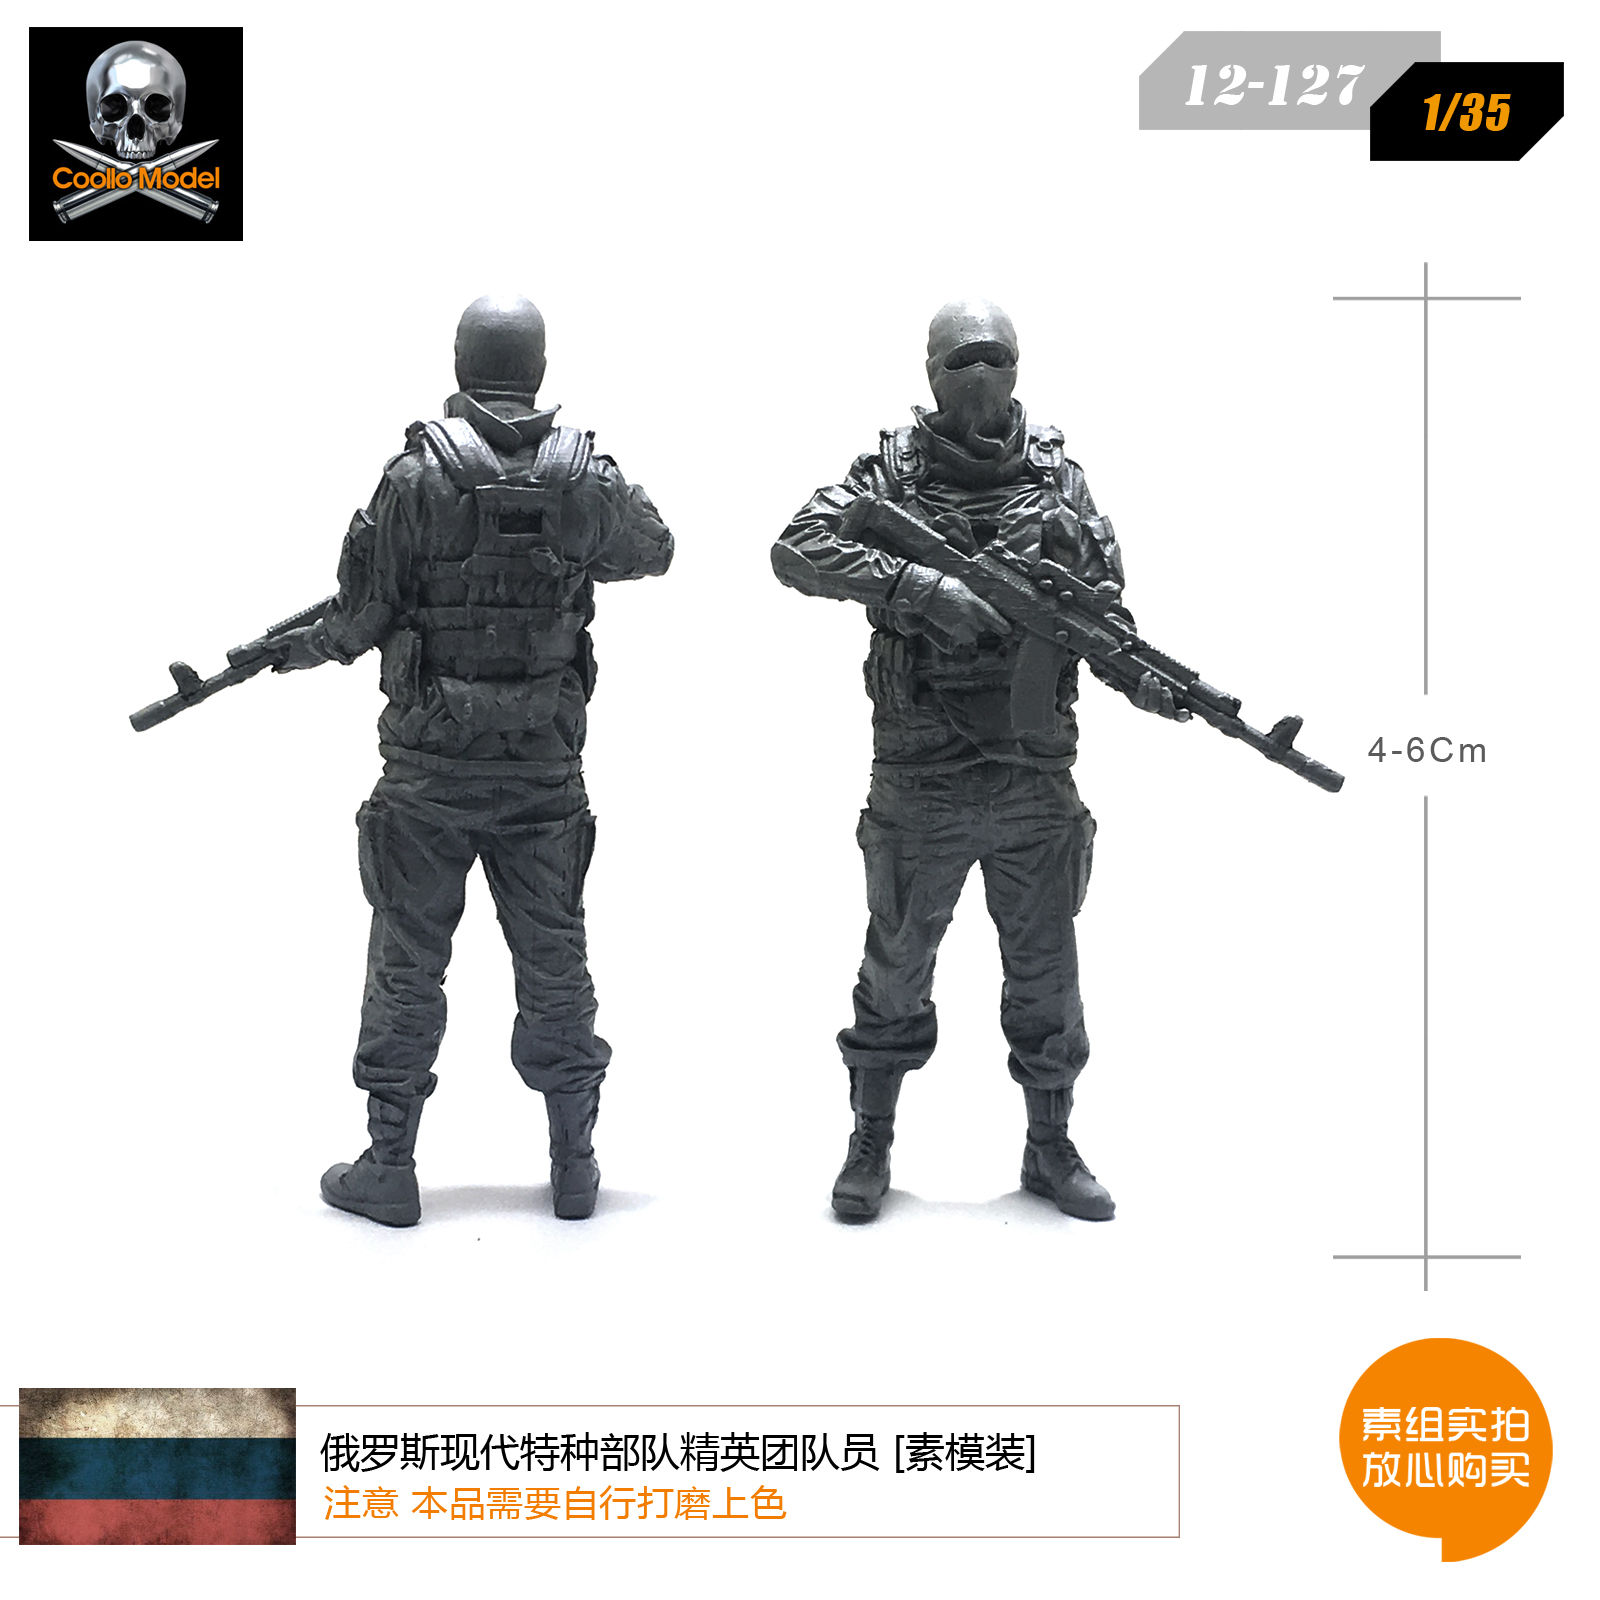 1/35 Resin Soldier Model  For Elite Team Members Of Modern Russian Special Forces Assembled 12-127